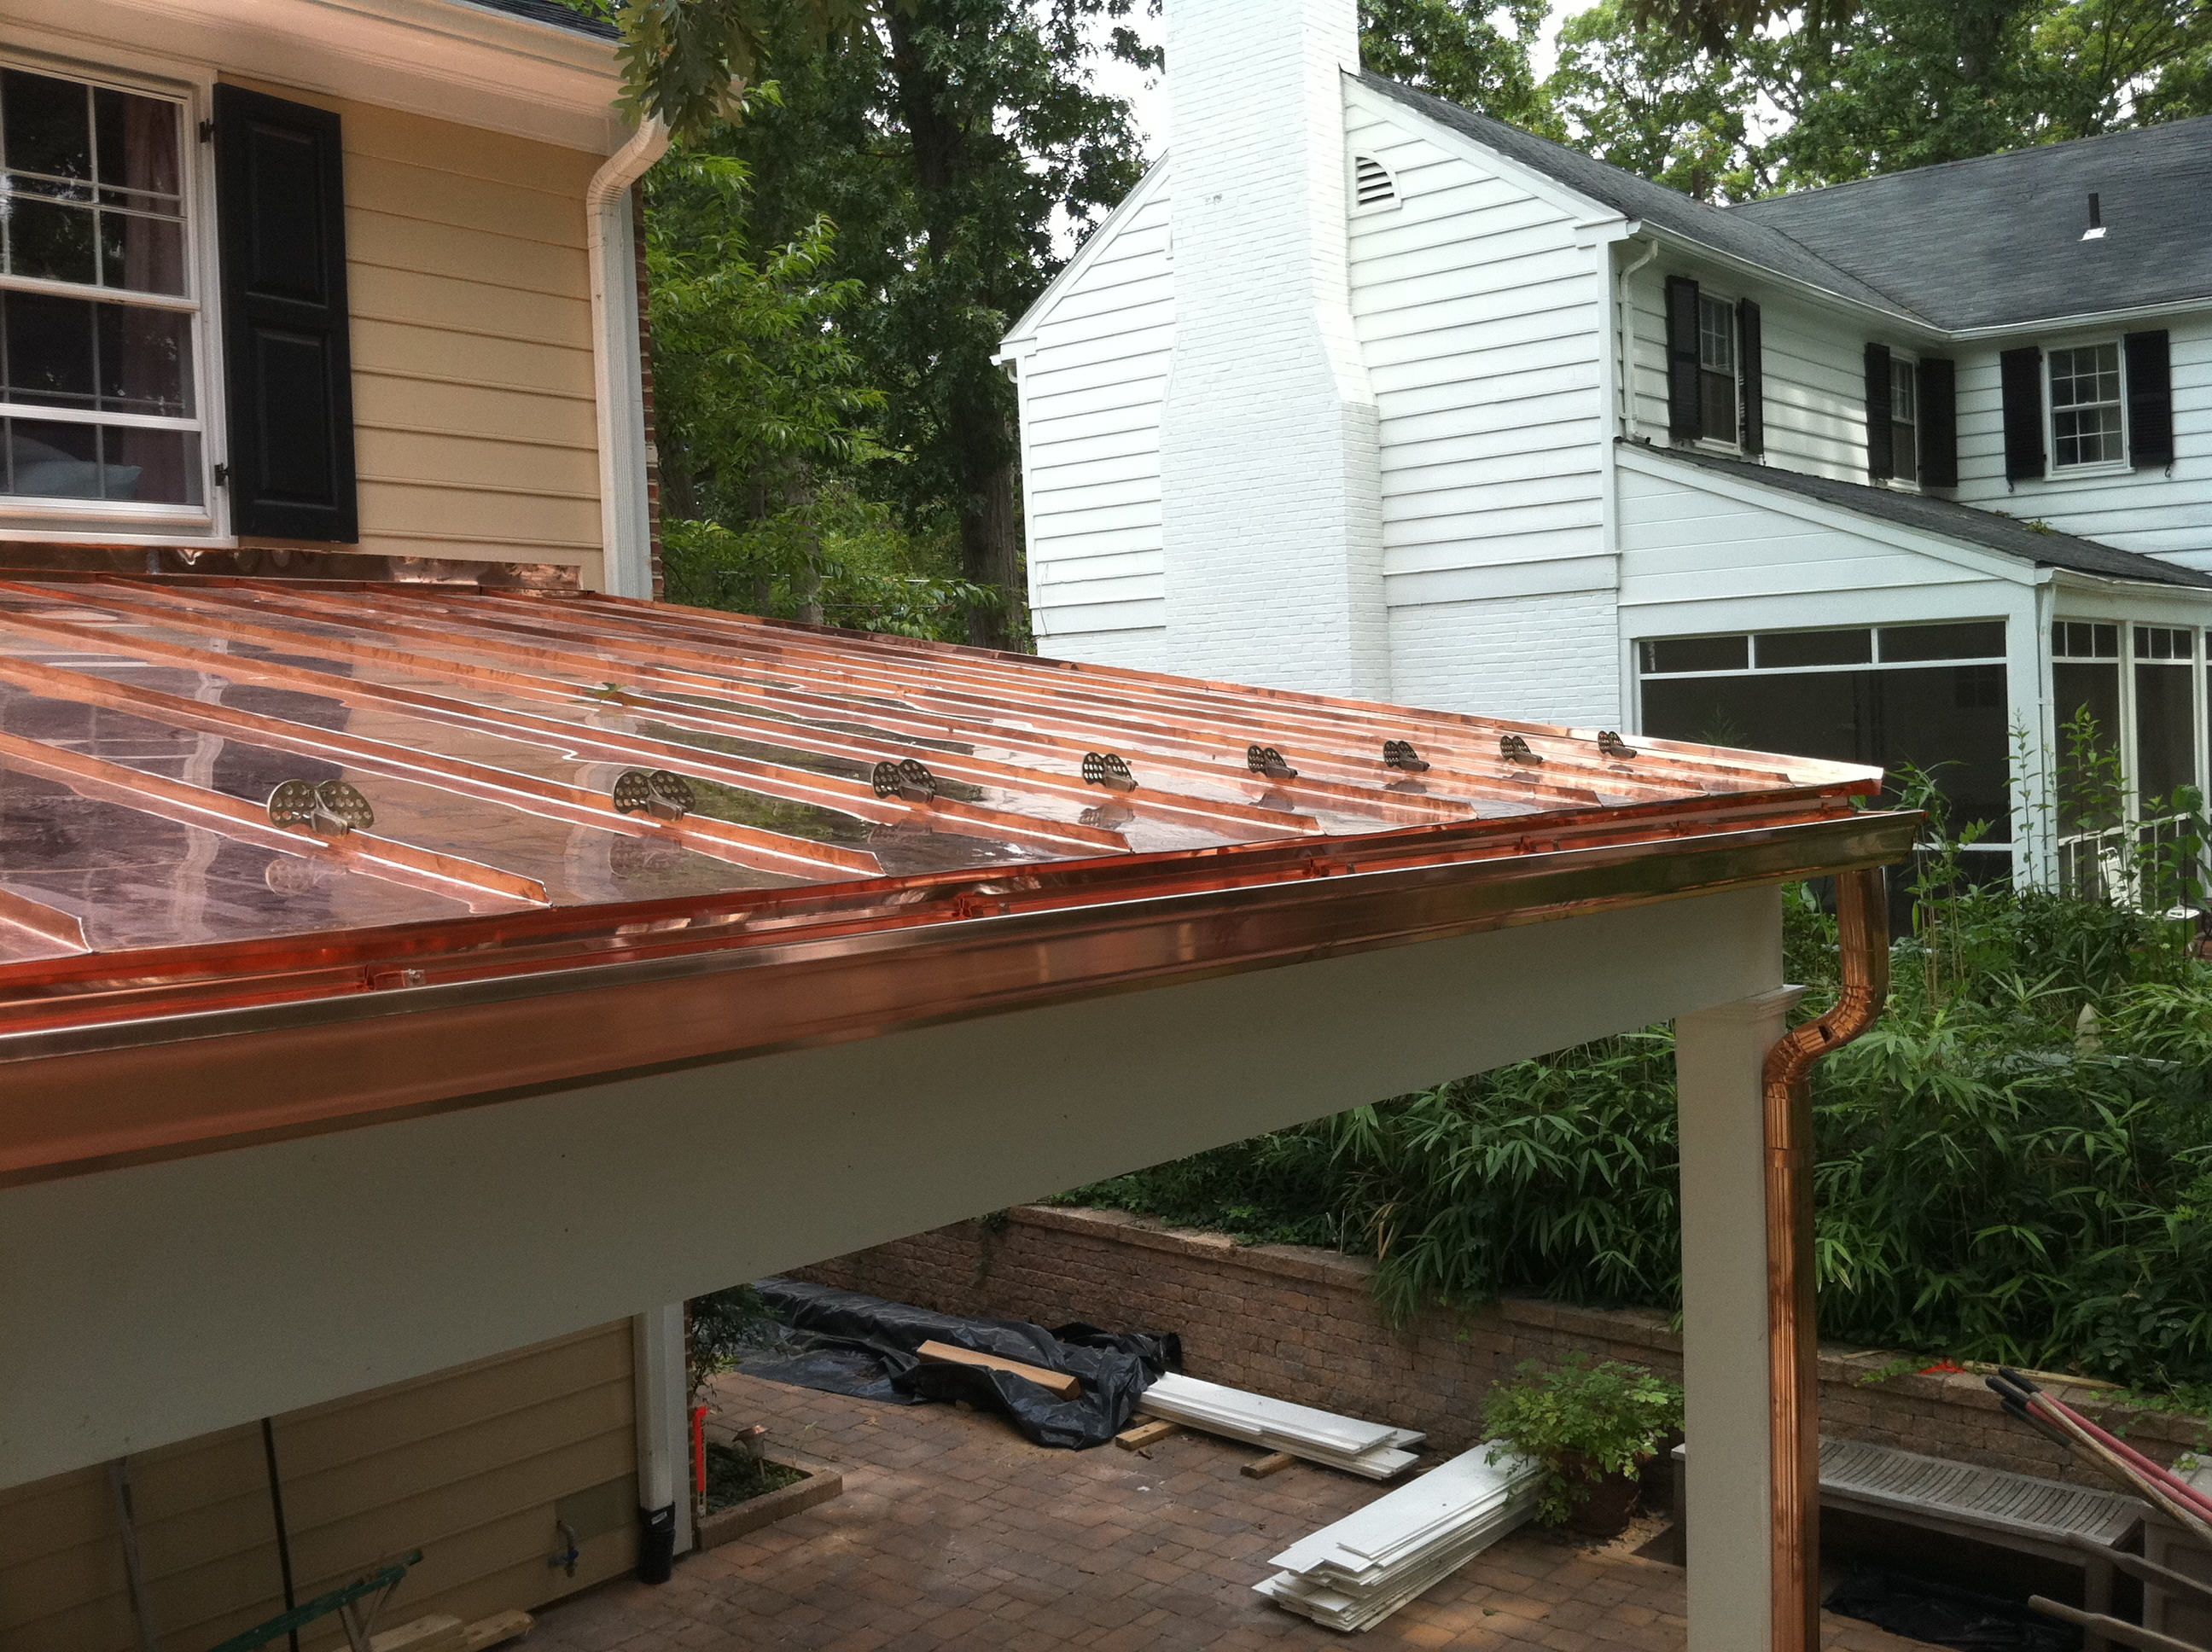 Standing seam copper roof lyons contracting for Copper standing seam roof